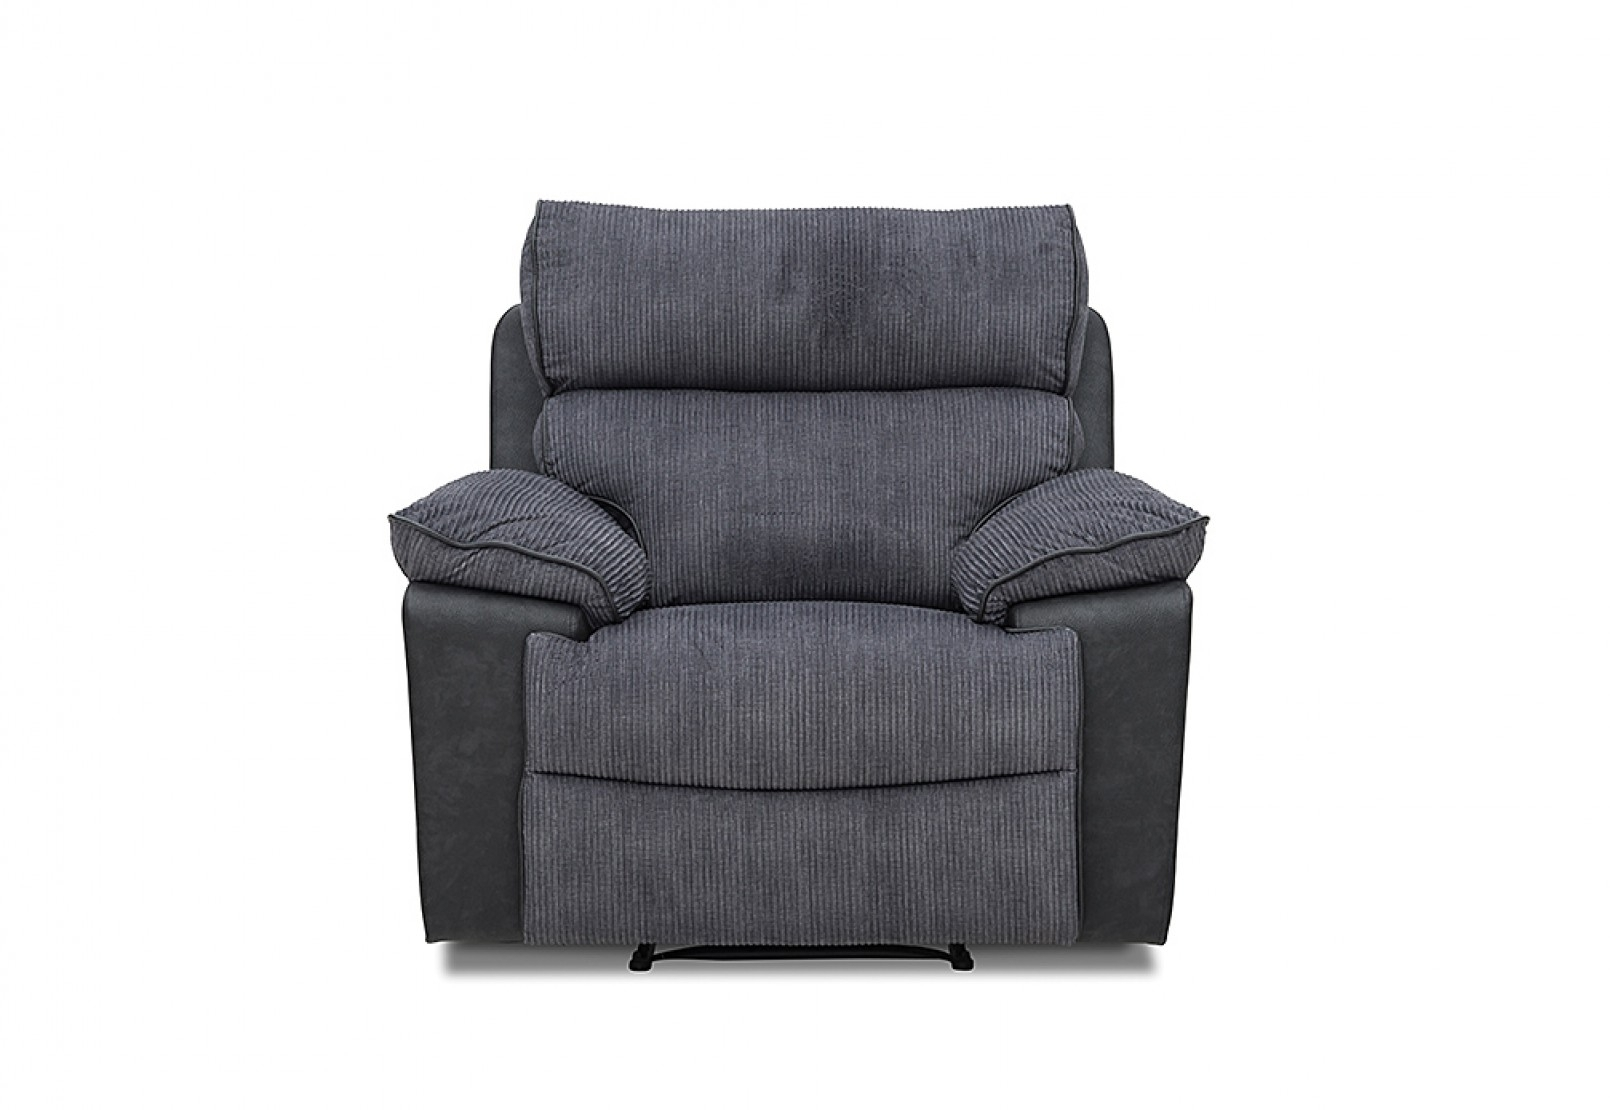 Jaxon Grey Upholstered Side Chairs Pertaining To Newest Jaxon Fabric Recliner (#7 of 20)